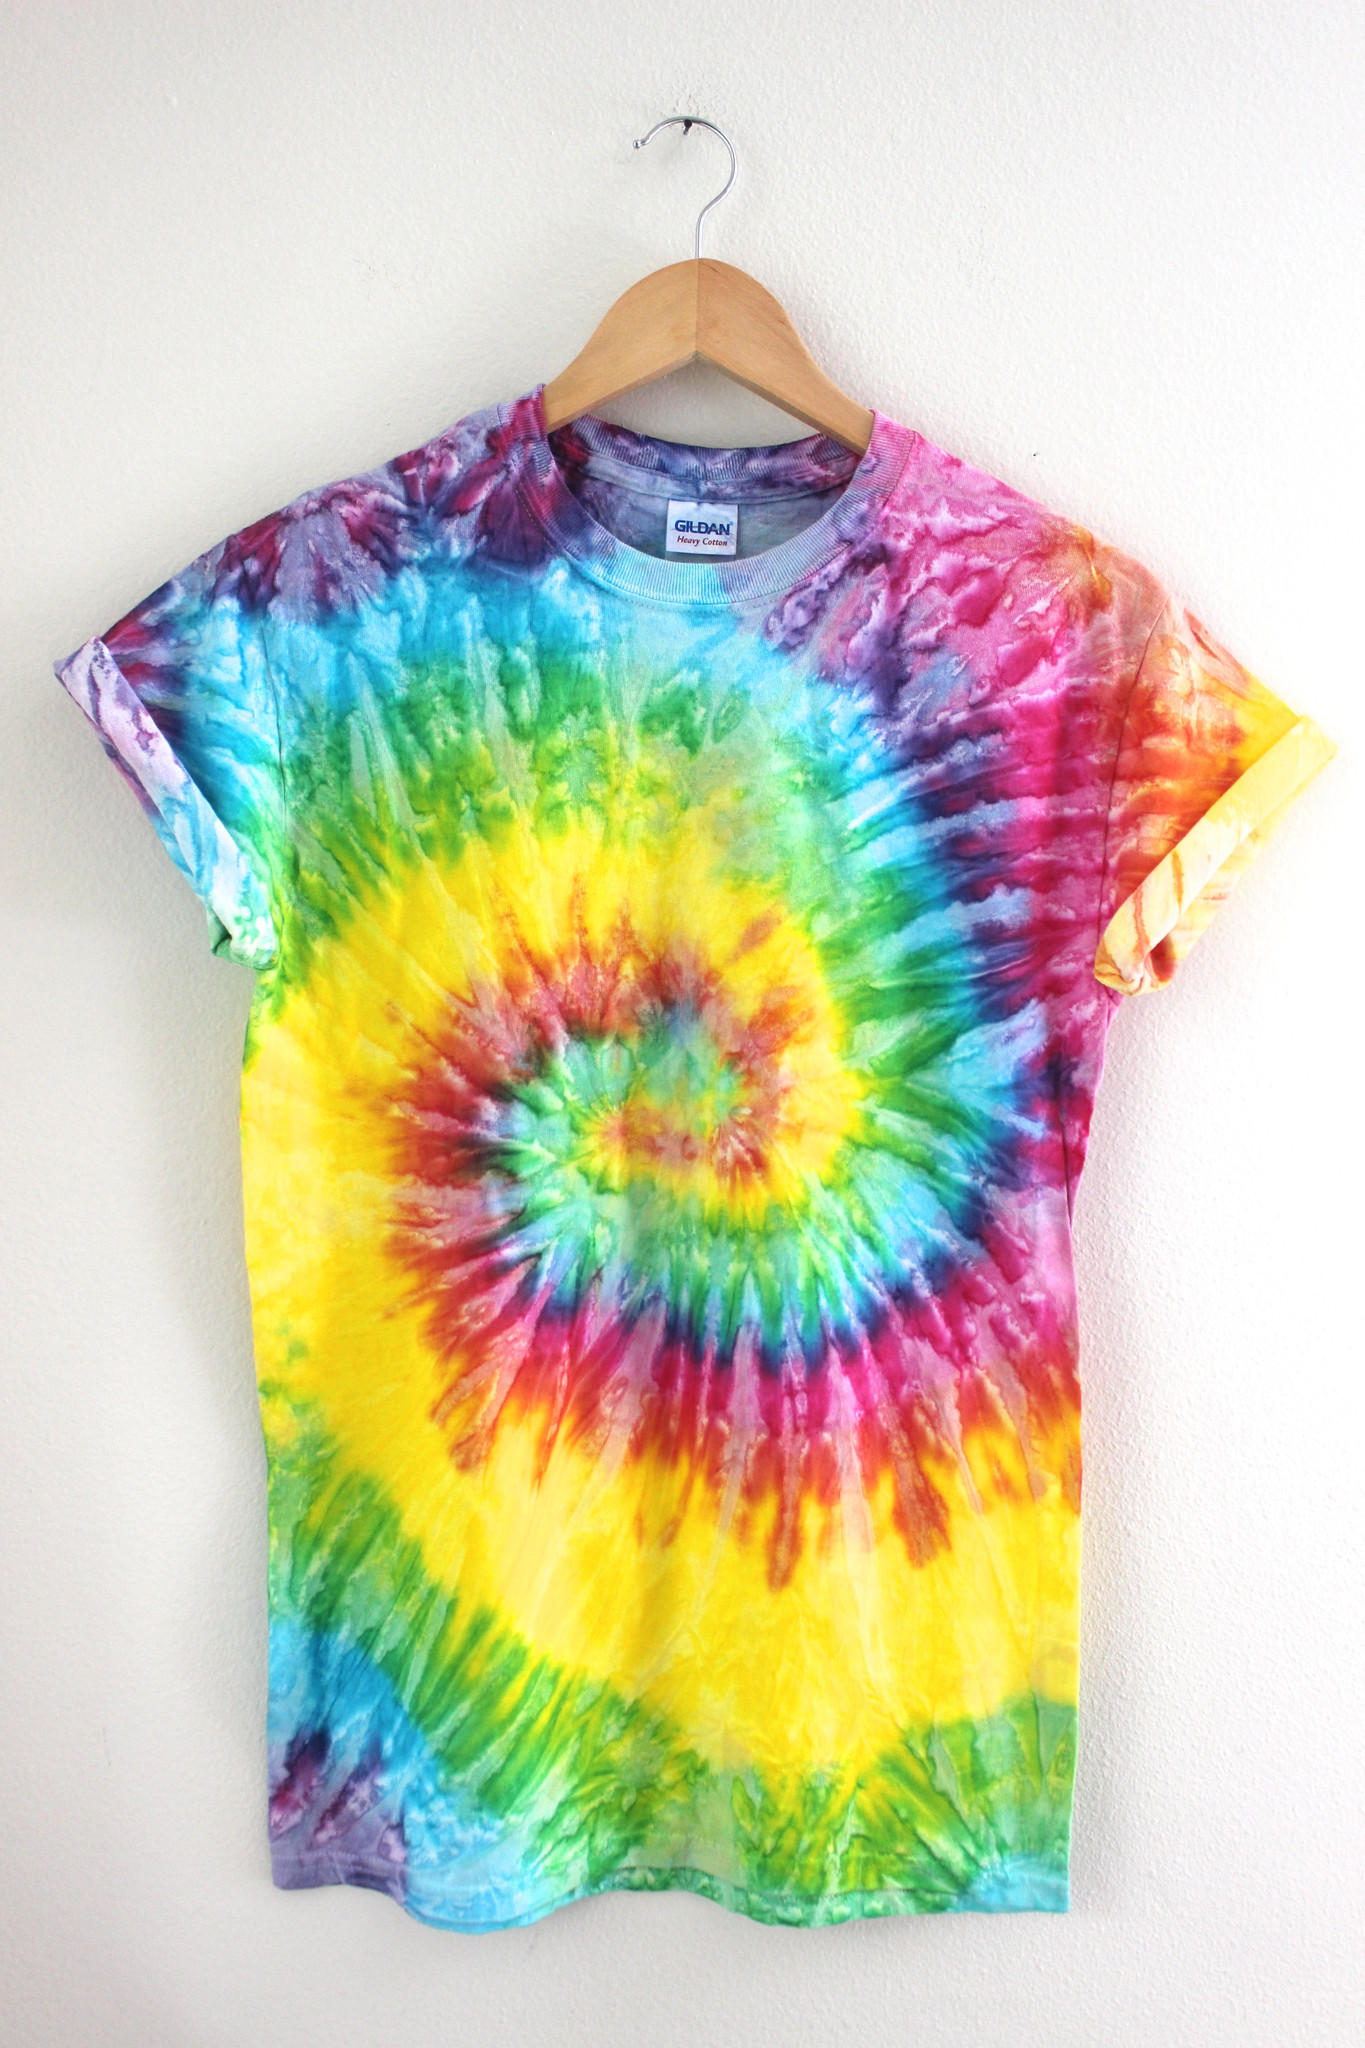 bright rainbow tie dye unisex tee from era of artists